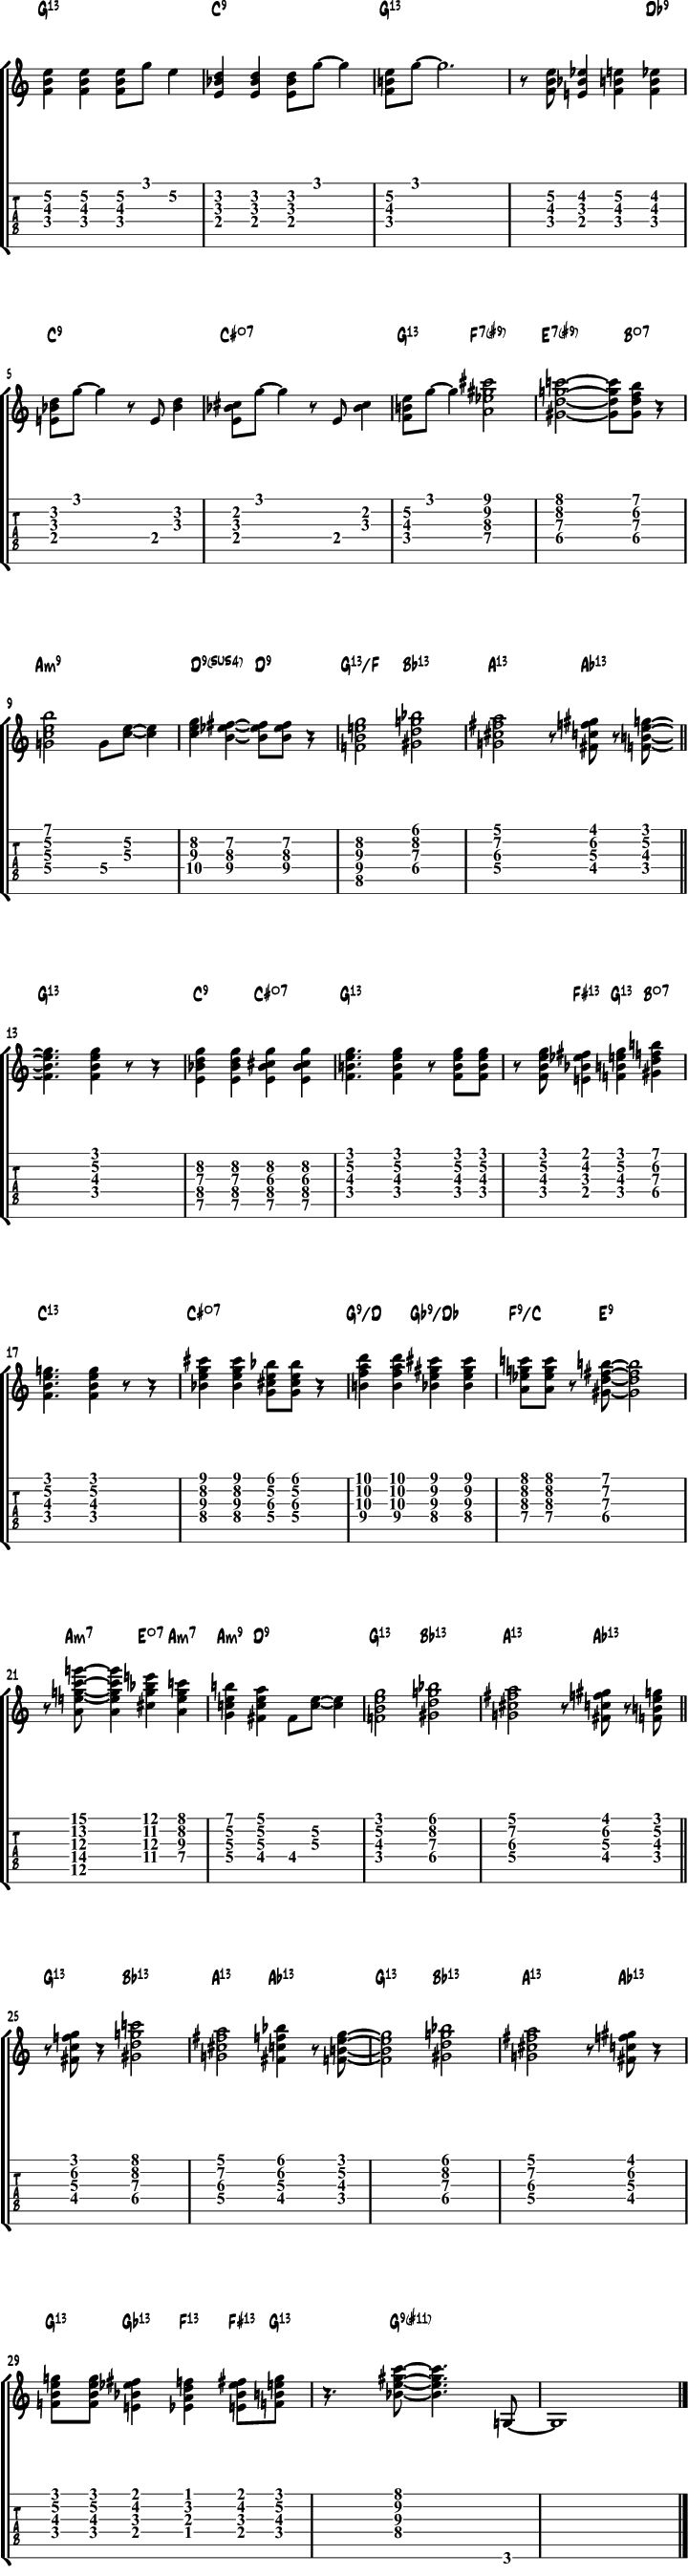 Jazz blues guitar chords comping exercise